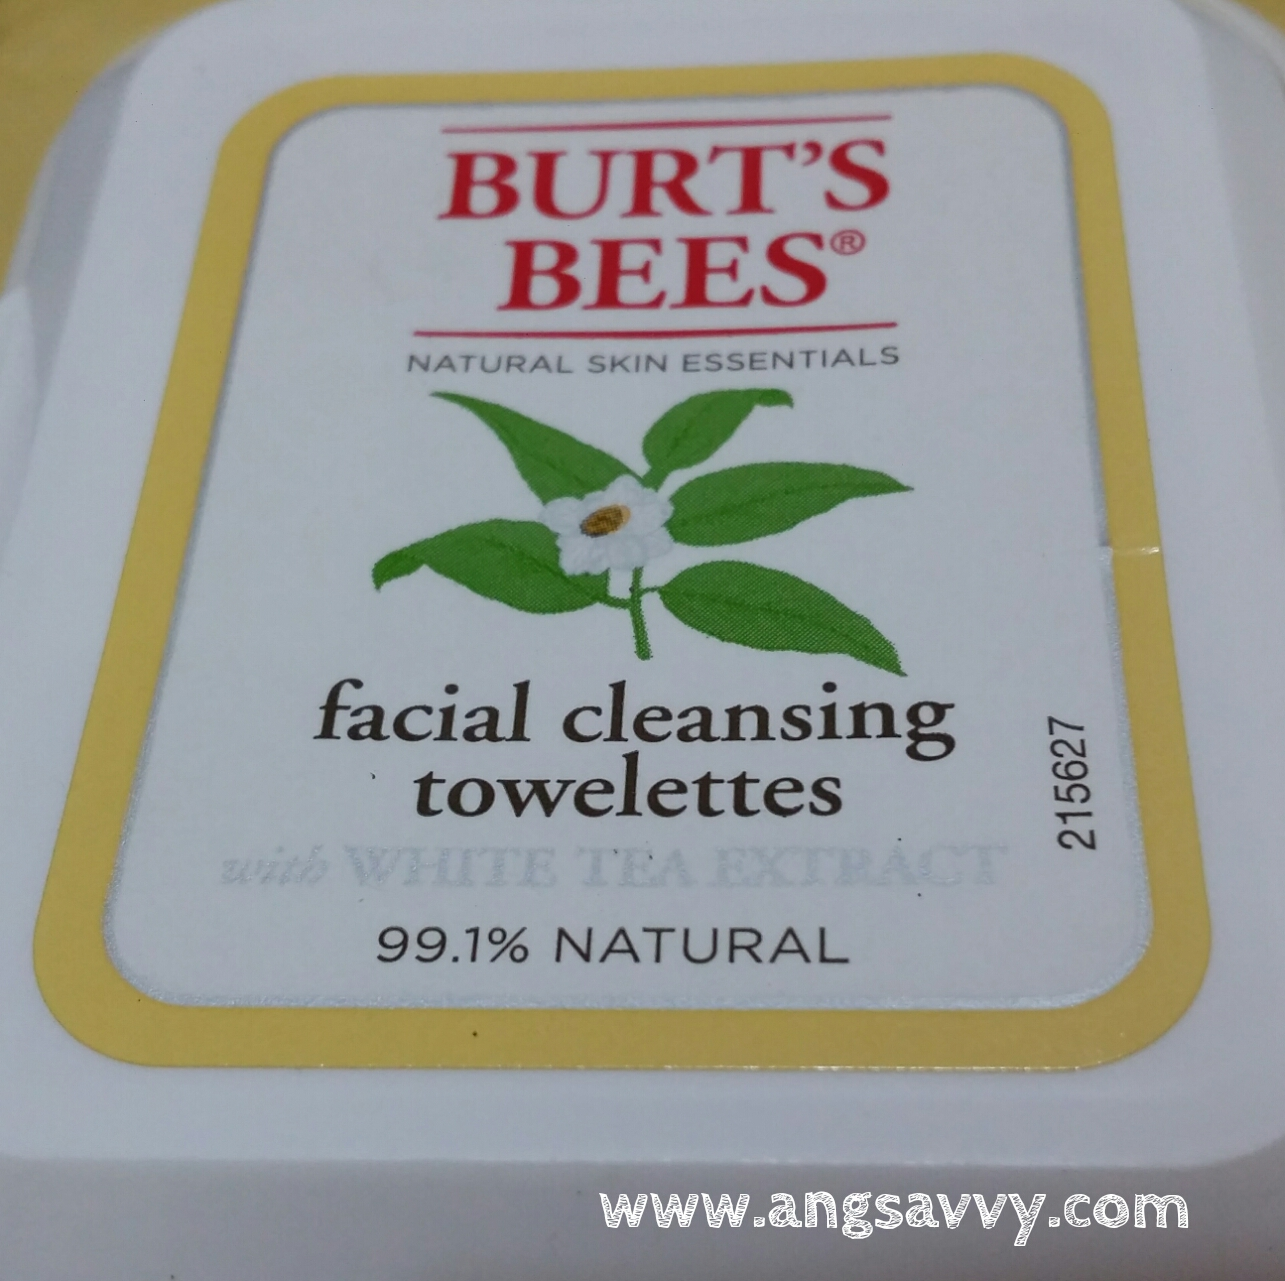 burts bees, facial, cleansing, towelettes